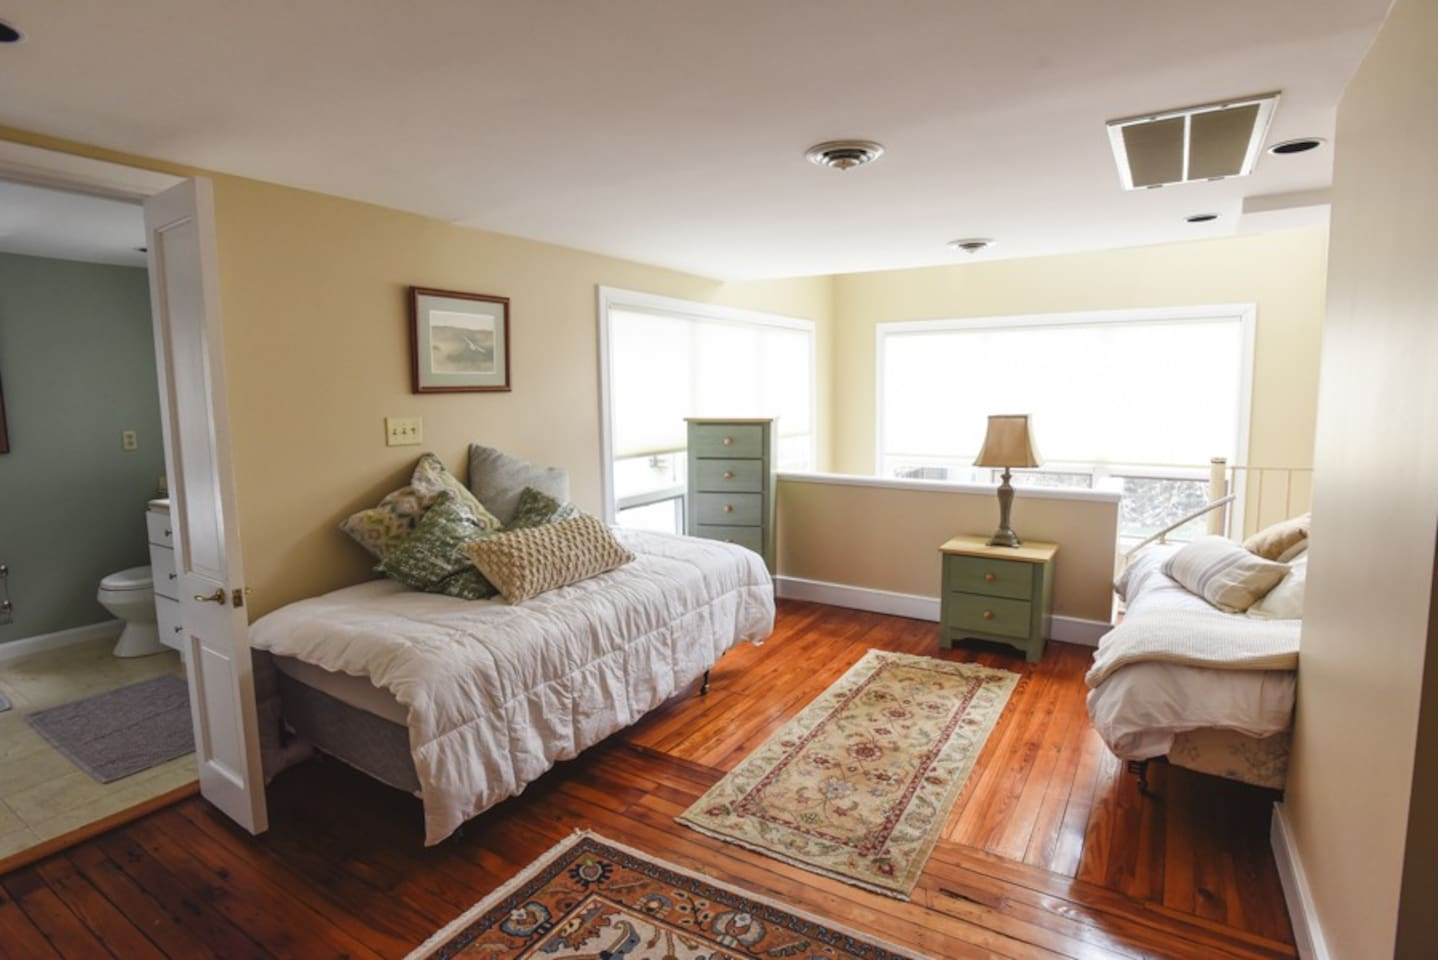 THE SAND DUNE ROOM -Perfect for a friends get away -  3 single beds and a large private bathroom with walk-in shower.